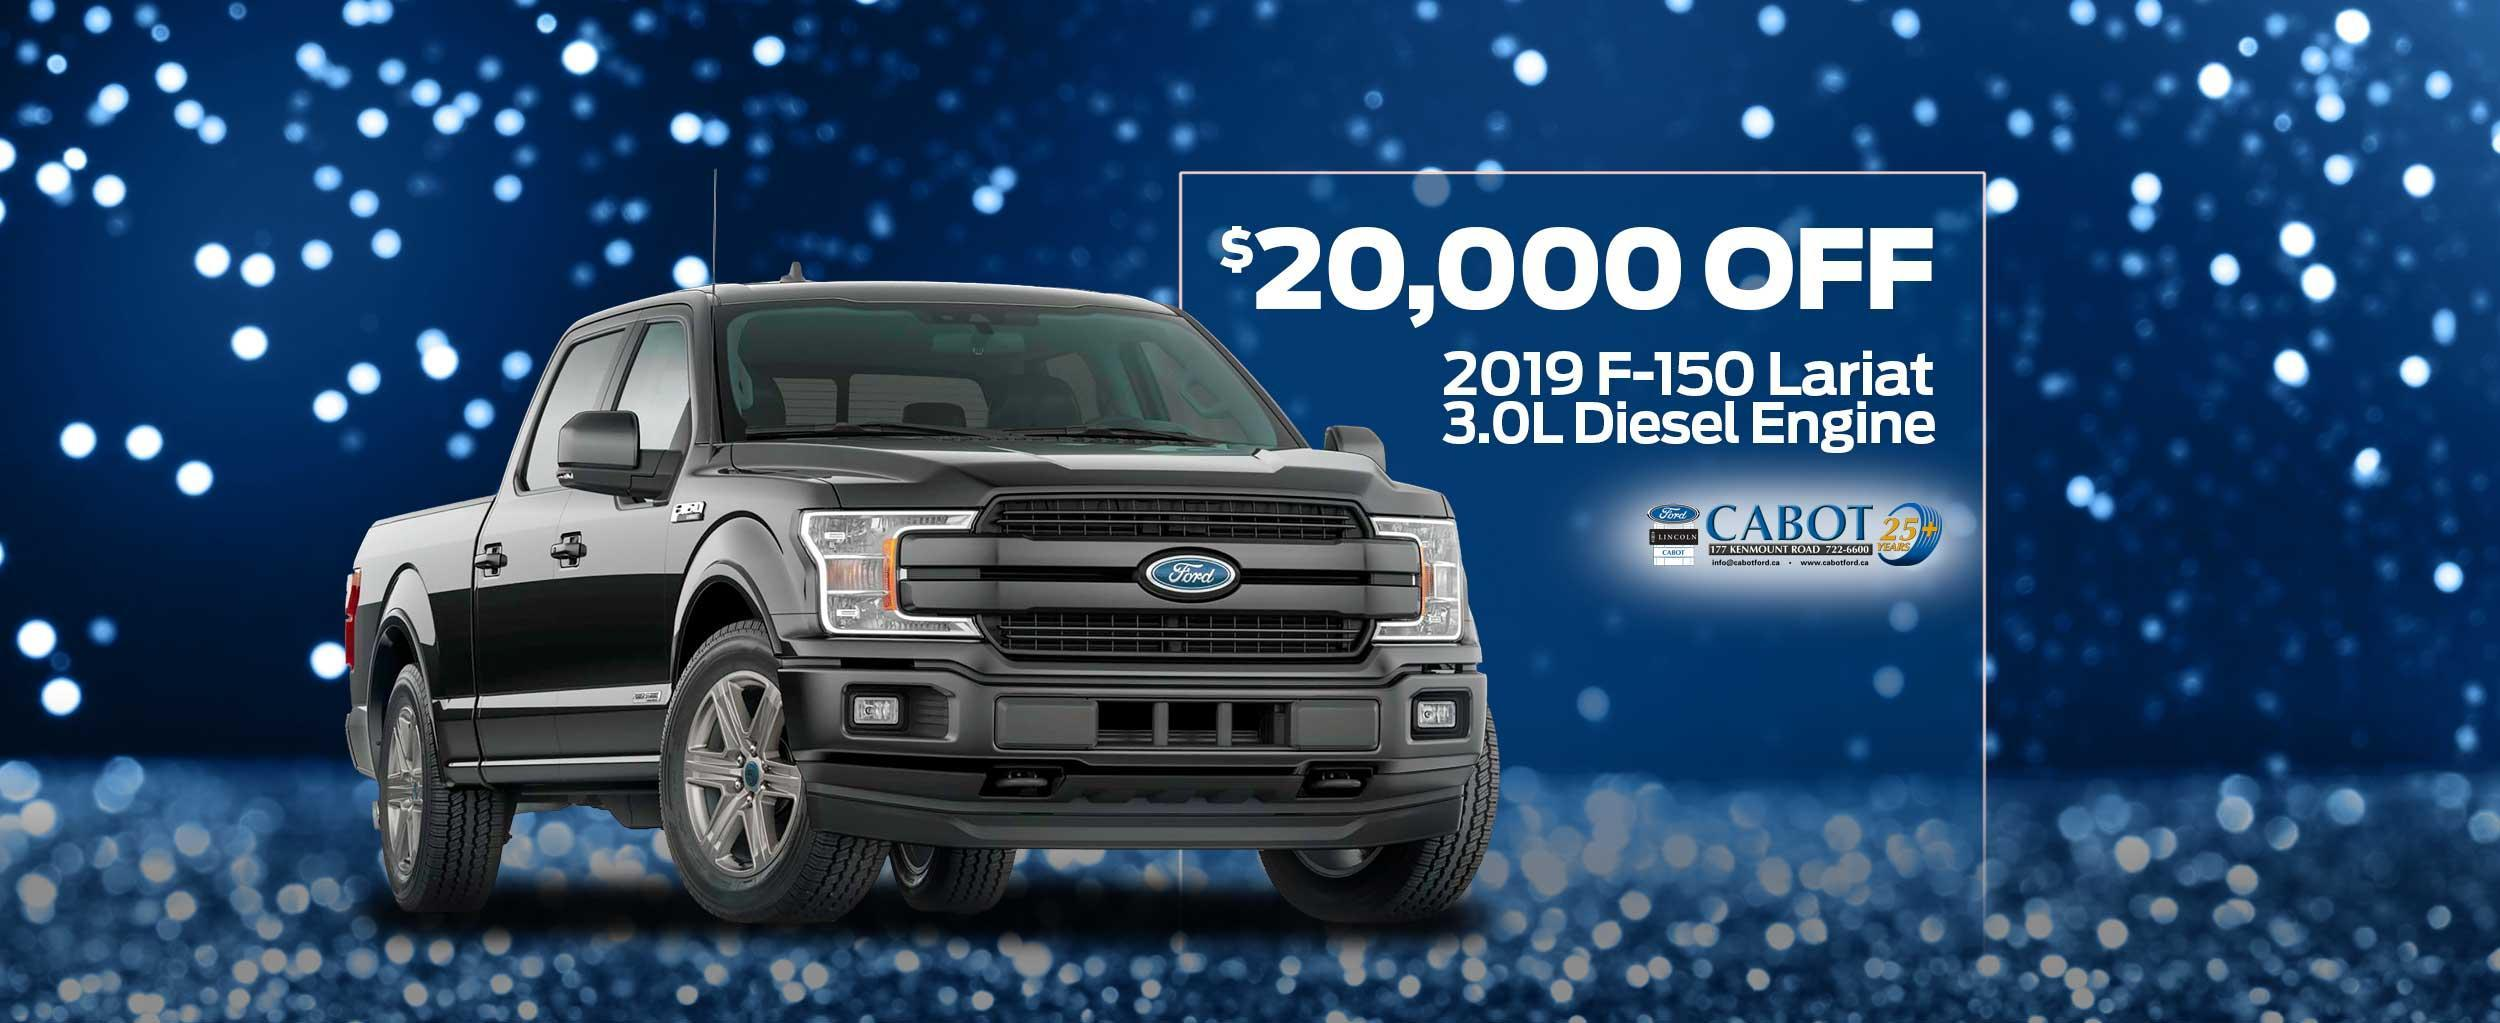 START 2020 BY SAVING $20,000 on the 2019 Ford F-150 Lariat with the 3.0L Diesel Engine with sunroof!